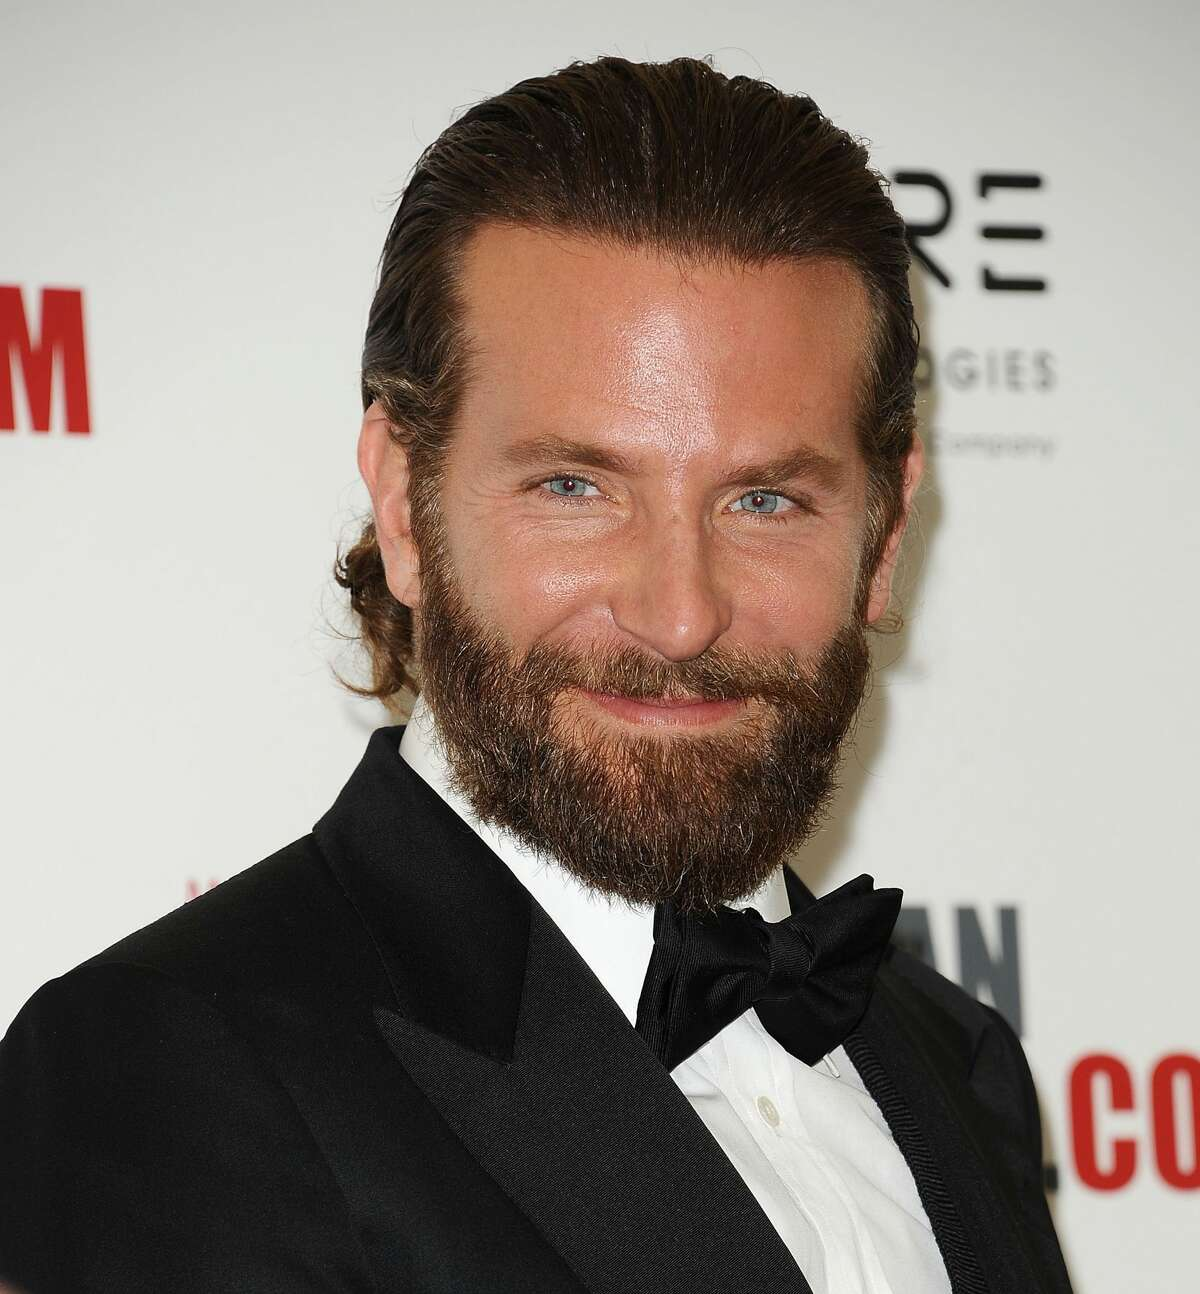 10. Bradley Cooper  Returned $12.10 for every dollar paid Source: Forbes